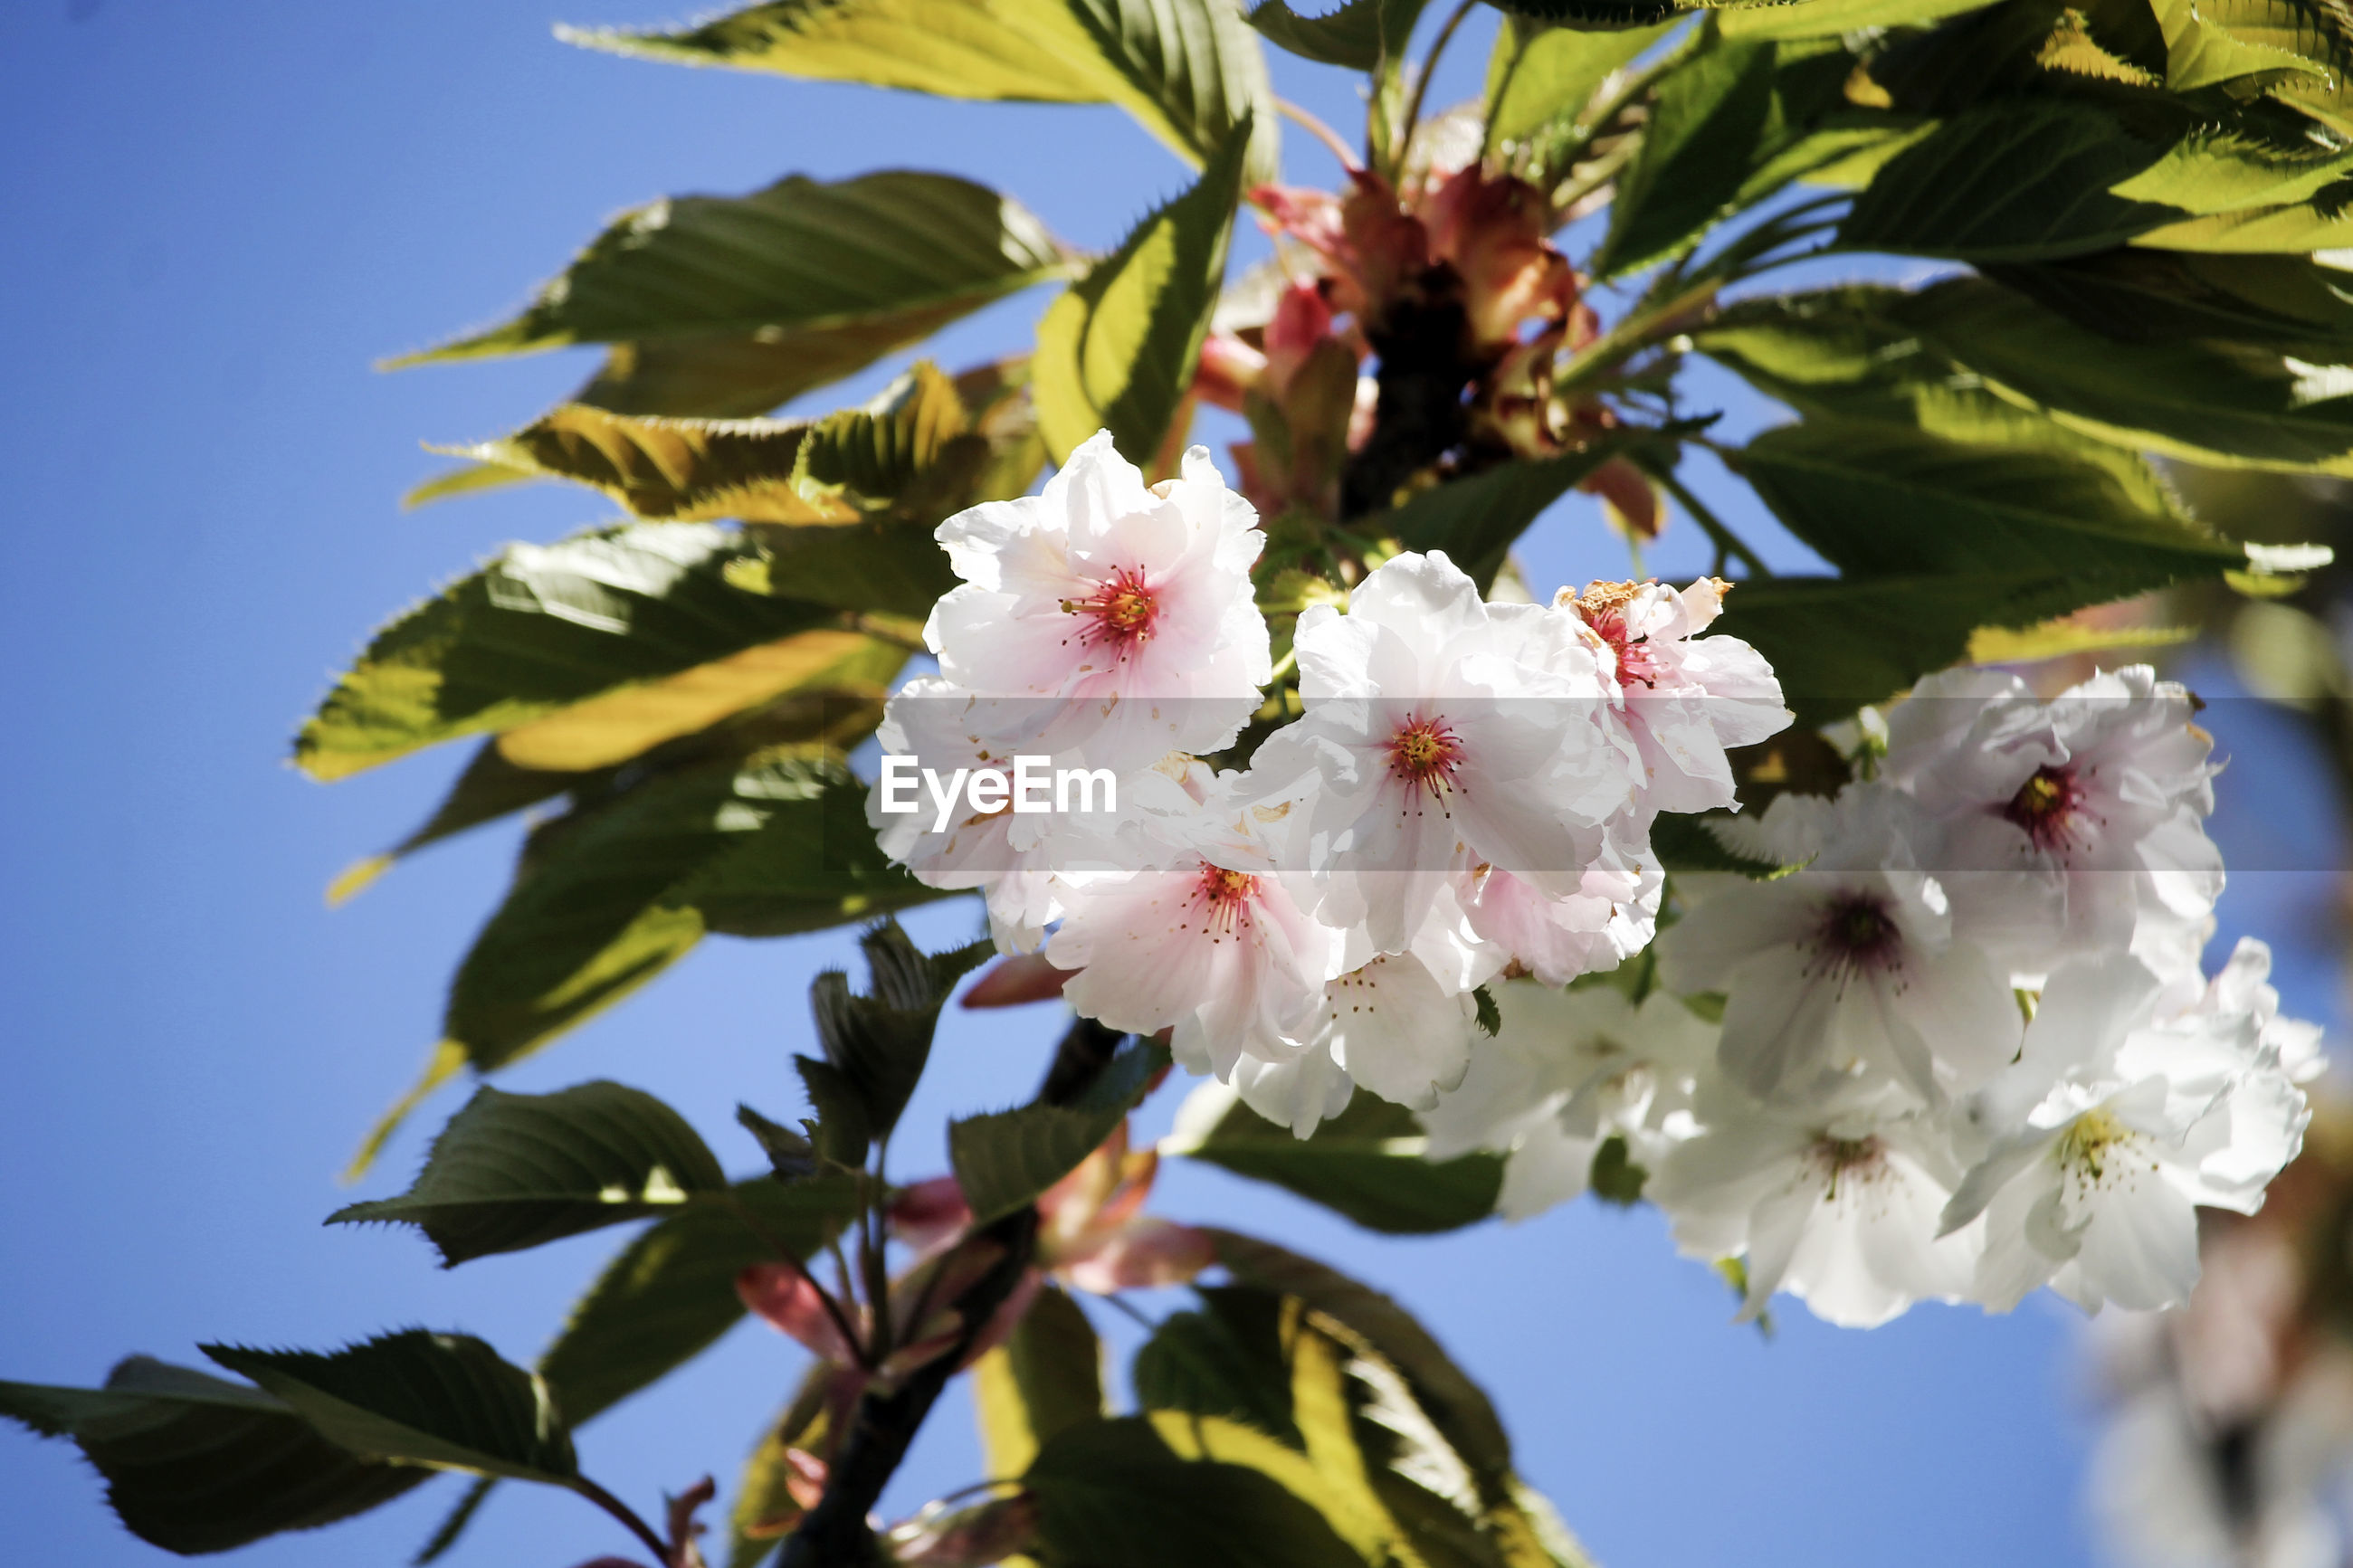 CLOSE-UP OF WHITE CHERRY BLOSSOM TREE AGAINST SKY